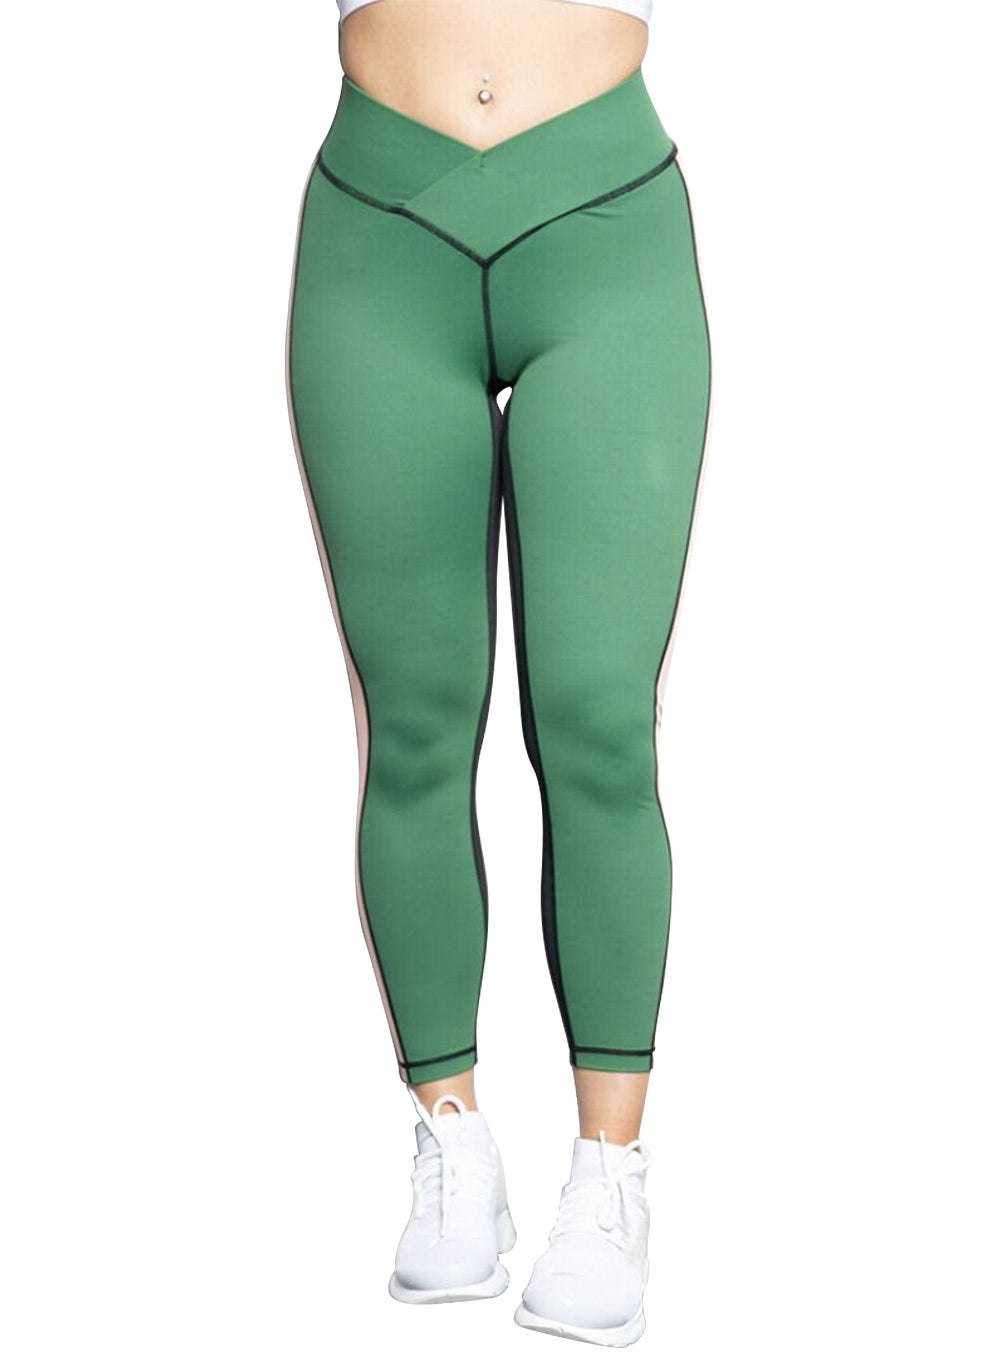 Limited edition Forest Green Gym Leggings - BBx FITNESS